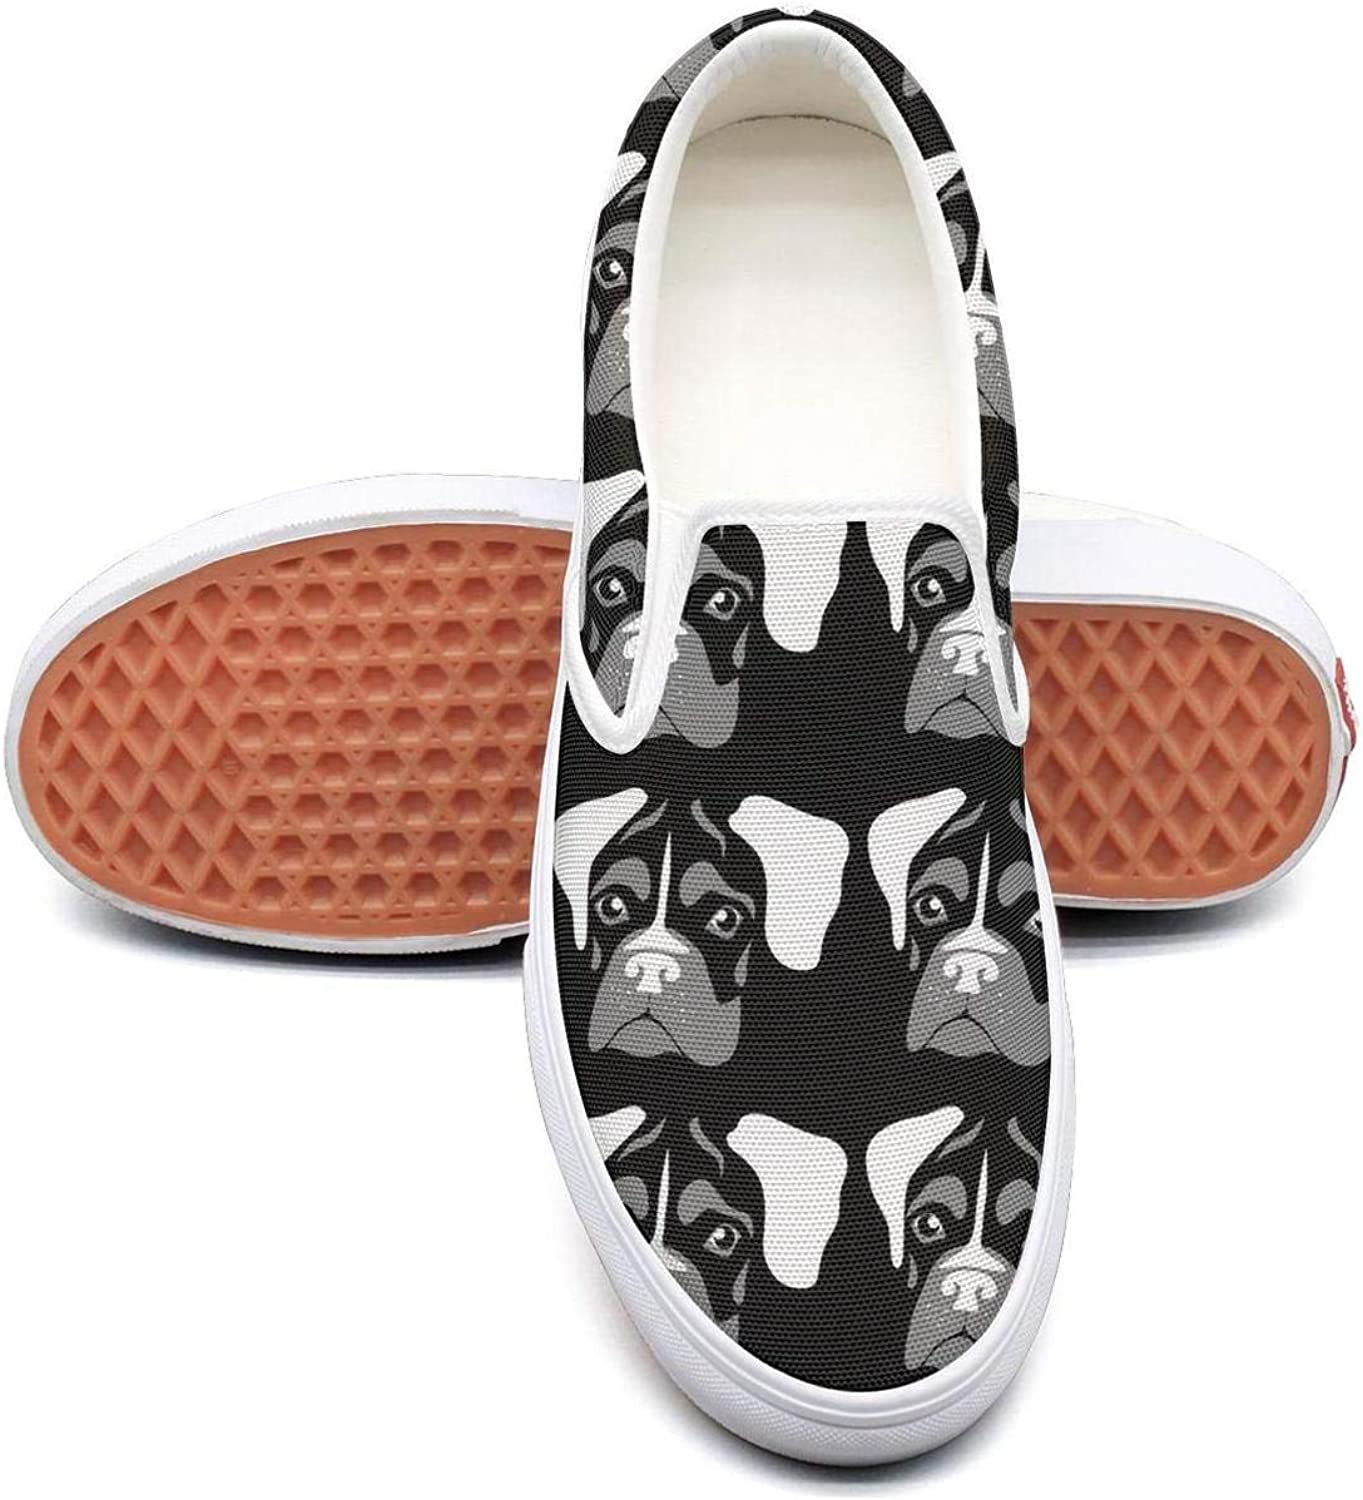 Refyds-es Funny Boxer Black Sketch Cool Womens Fashion Slip on Low Top Lightweight Canvas Sneakers shoes